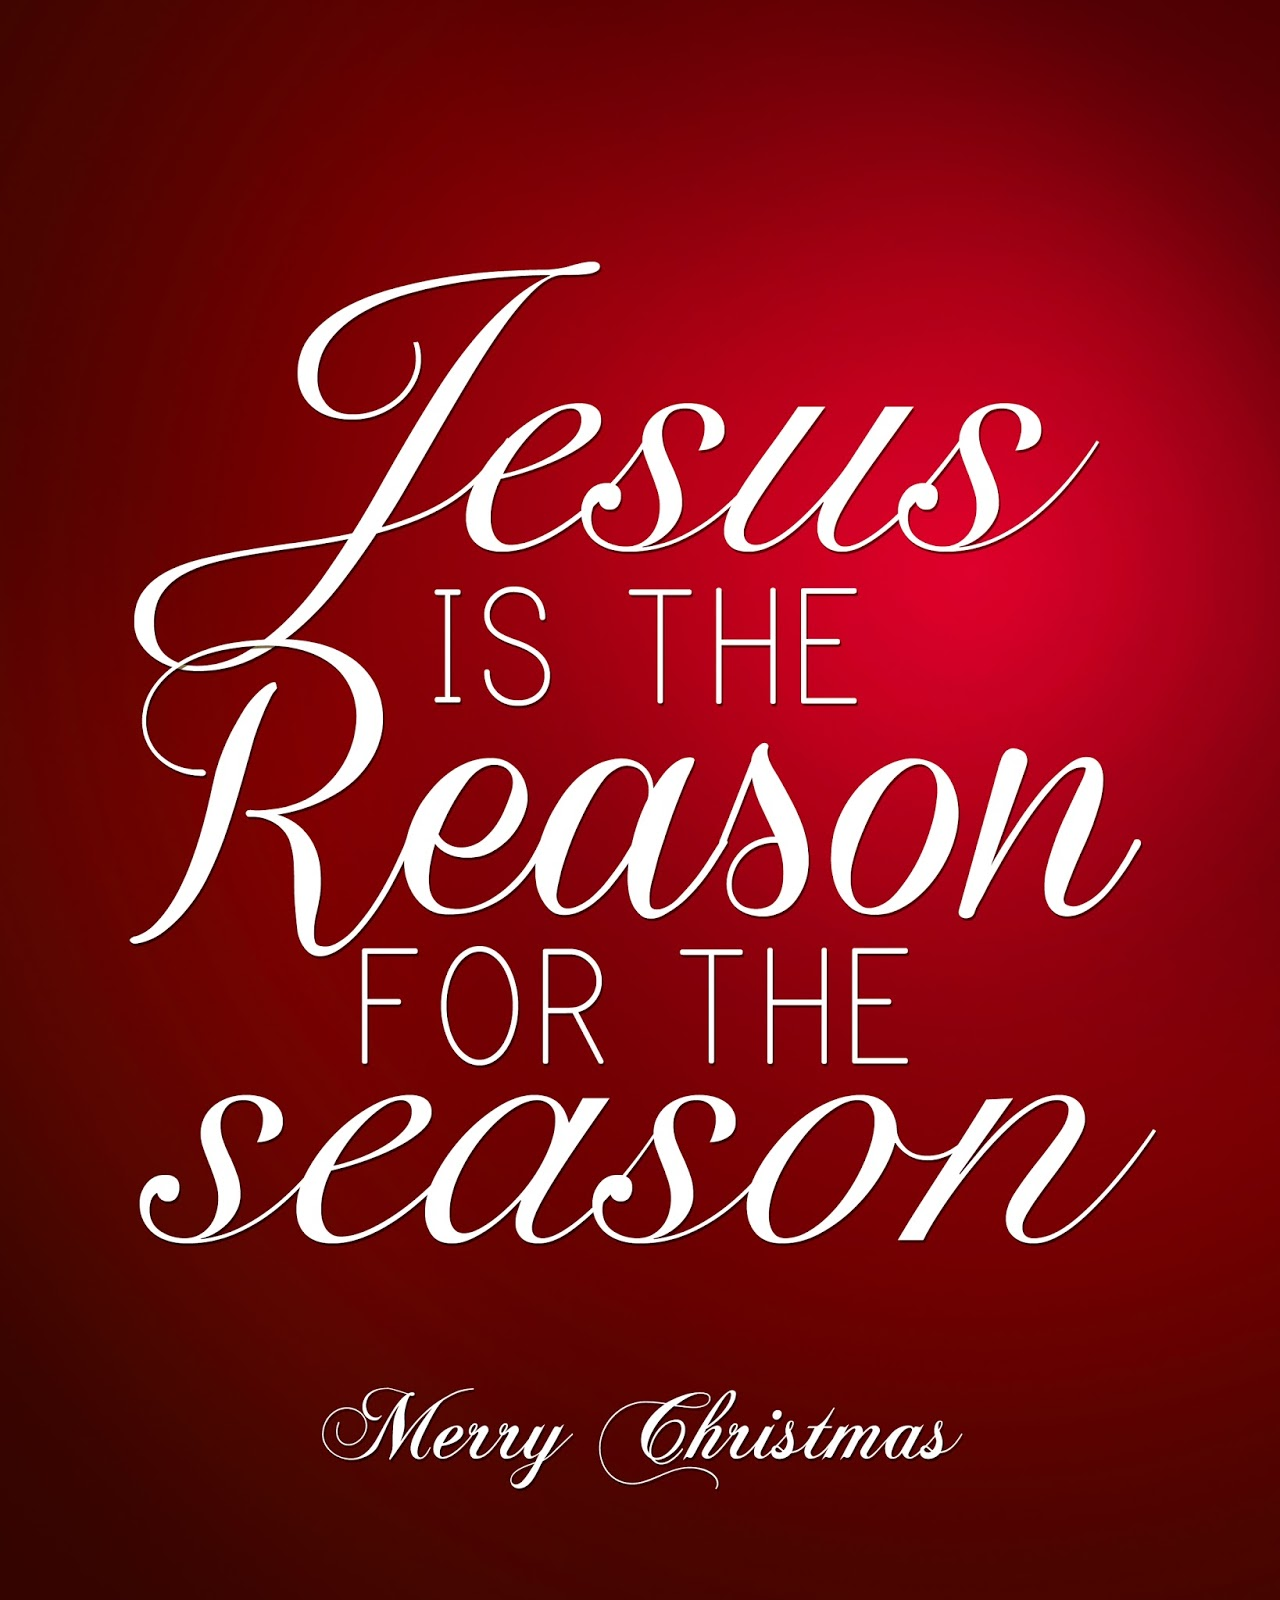 tomorrow is christmas d anyone excited i hope you all have a good christmas remember the real reason why we celebrate christmas its because jesus - Tomorrow Is Christmas